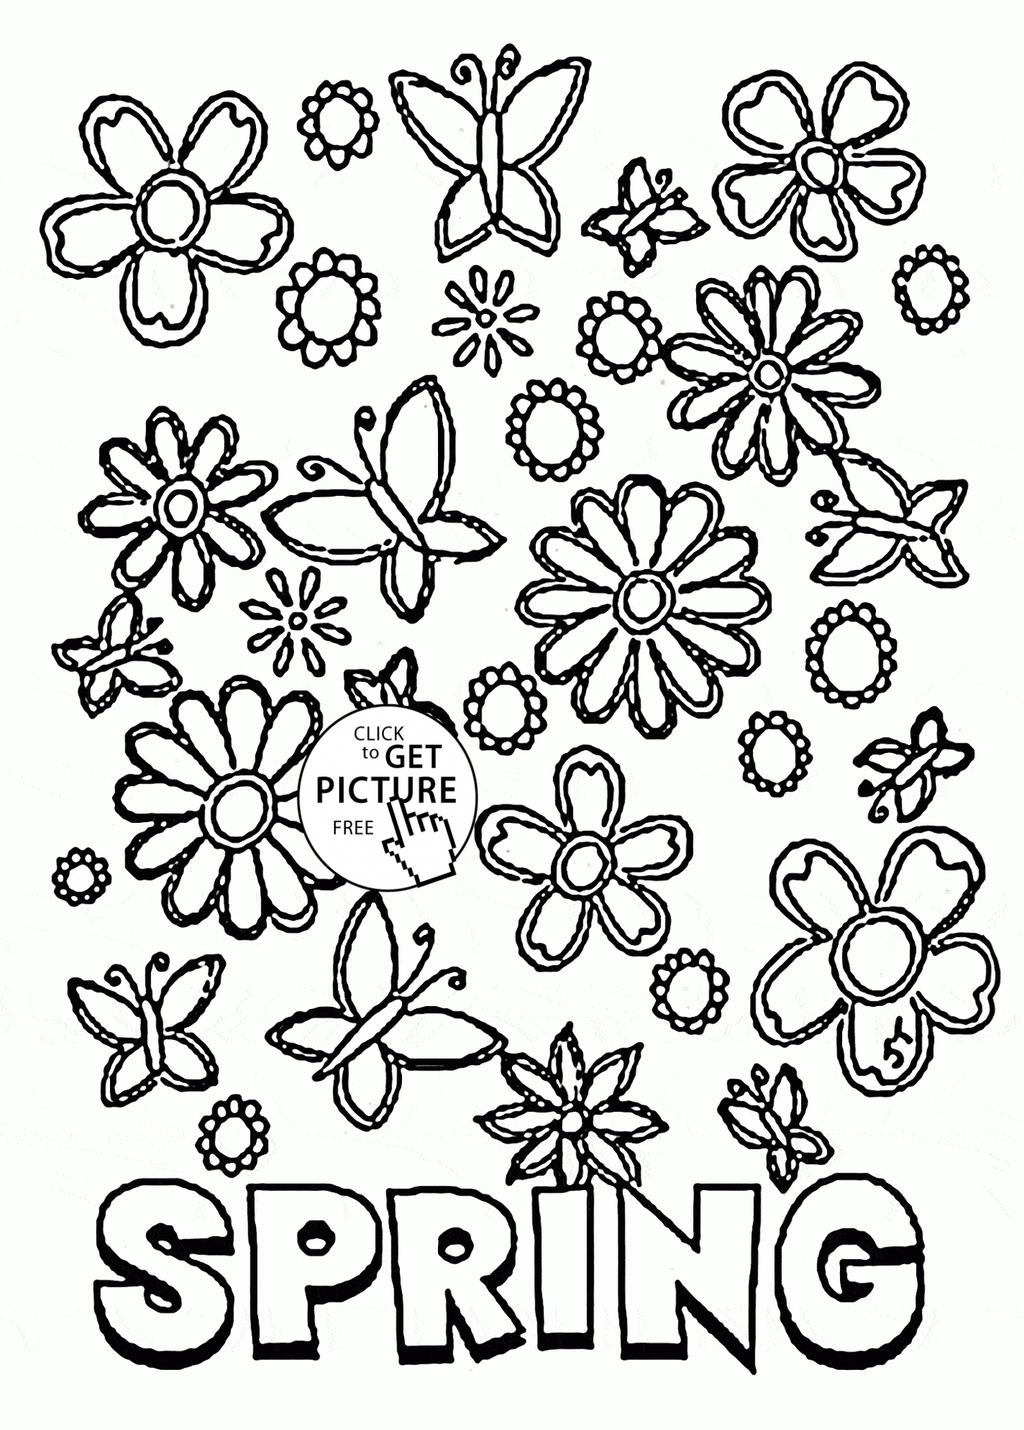 Coloring Pages Spring Springtime Coloring Pages Spring Cpaaffiliate For Adults Free